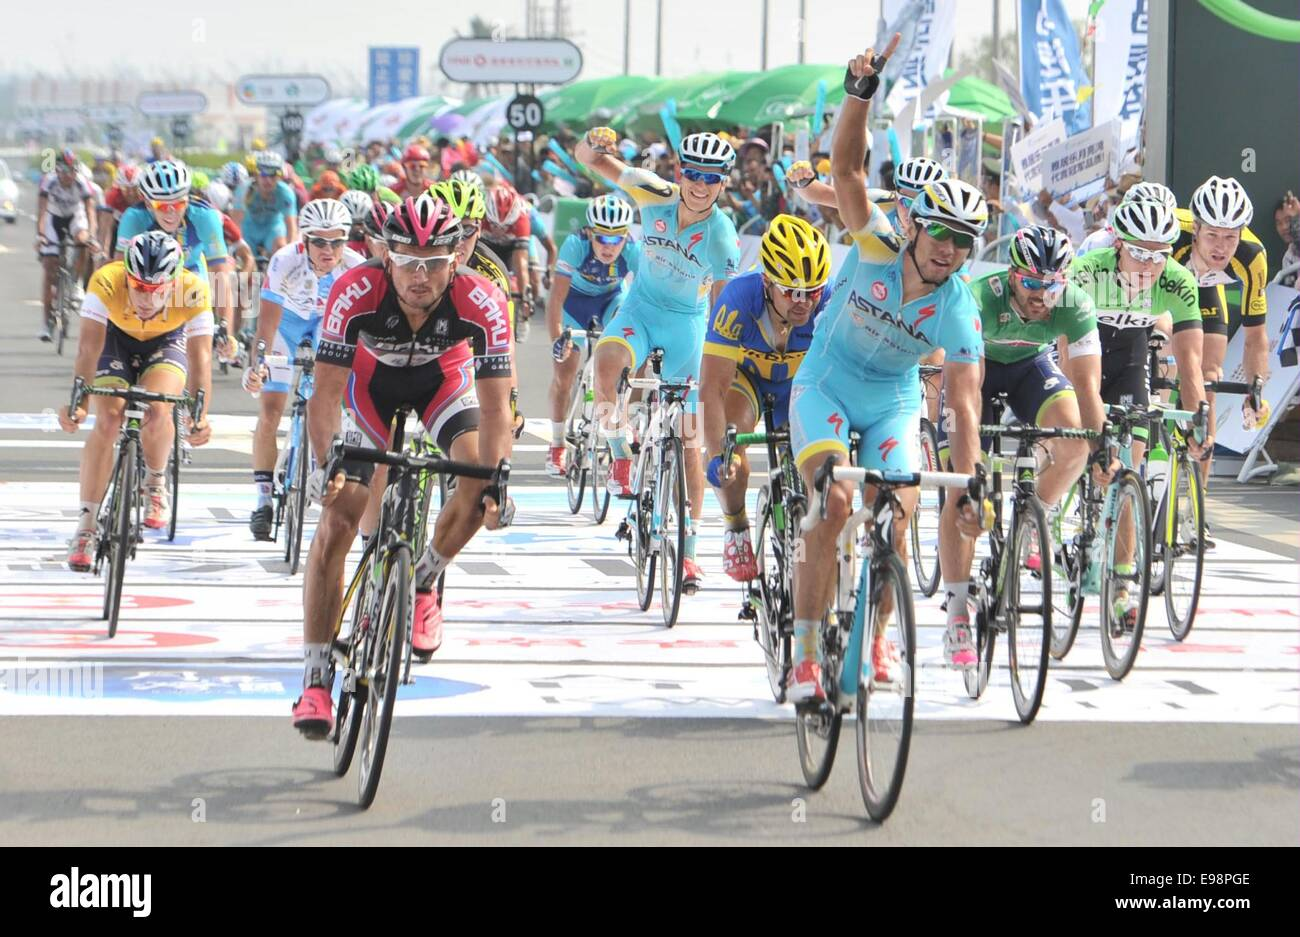 Hainan, China's Hainan Province. 22nd Oct, 2014. Arman Kamyshev (front R) of the Astana pro team-KAZ celebrates - Stock Image